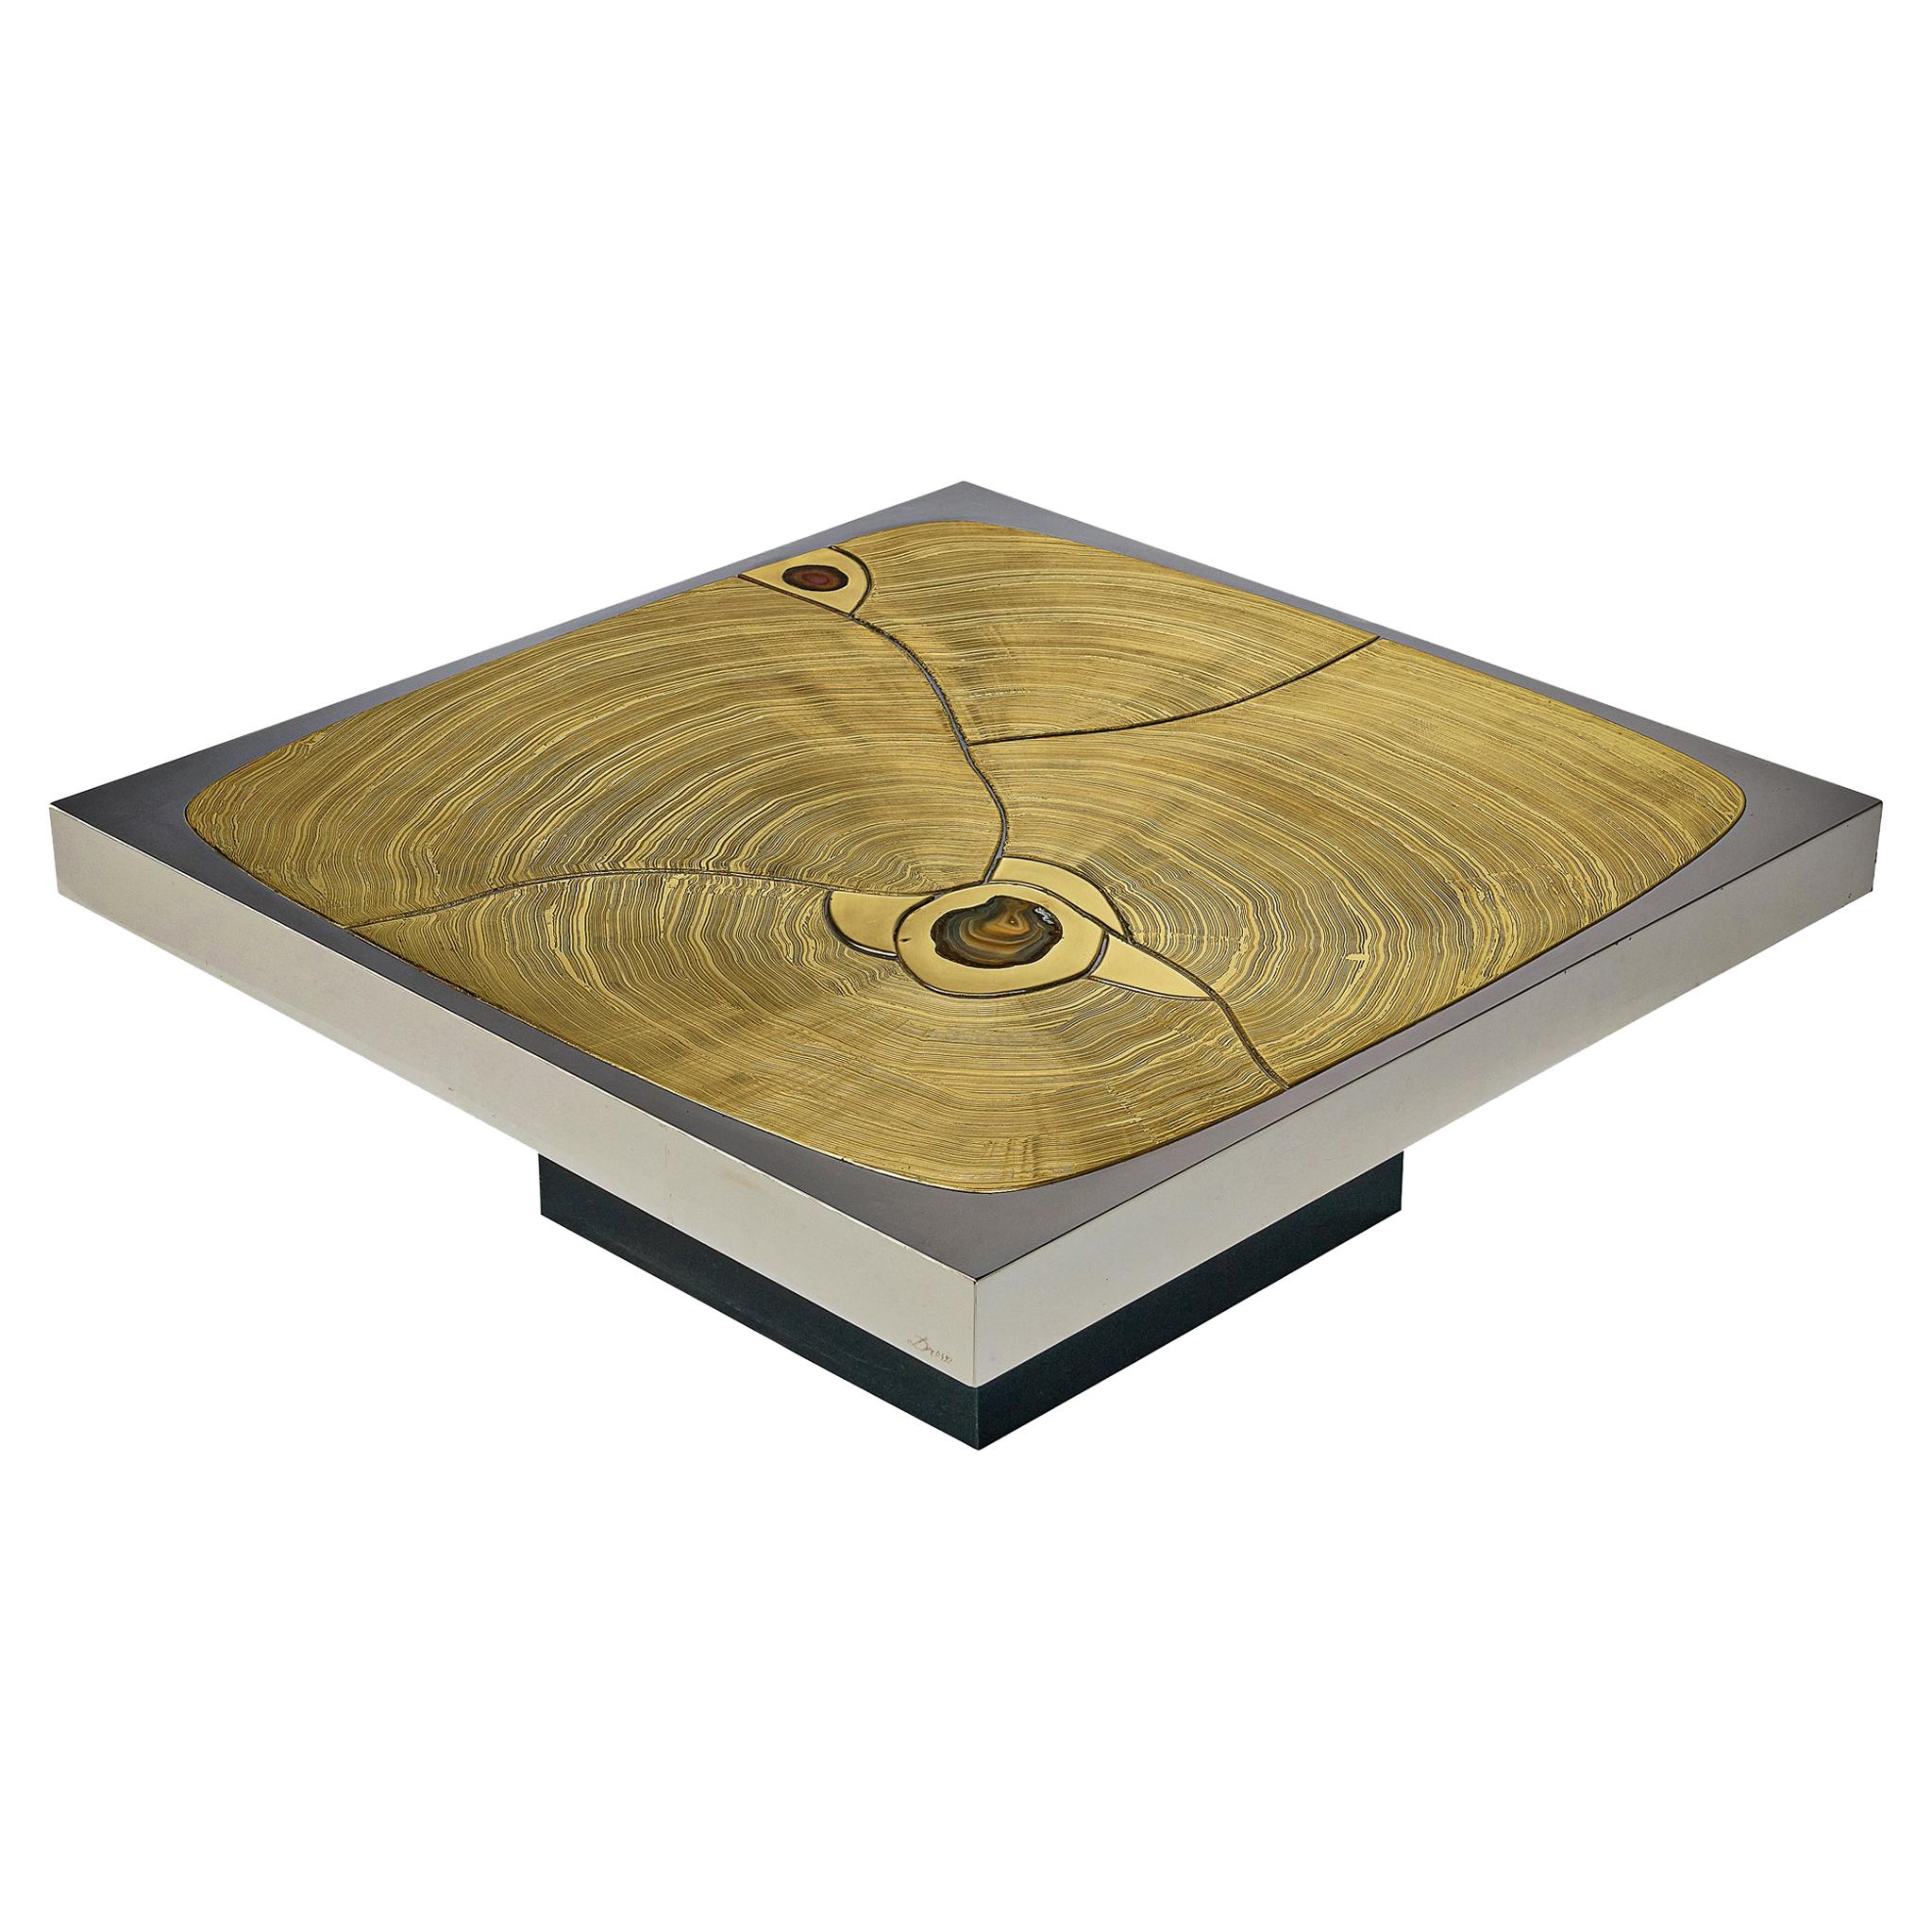 Jean Claude Dresse Coffee Table in Brass with Agate Inlays